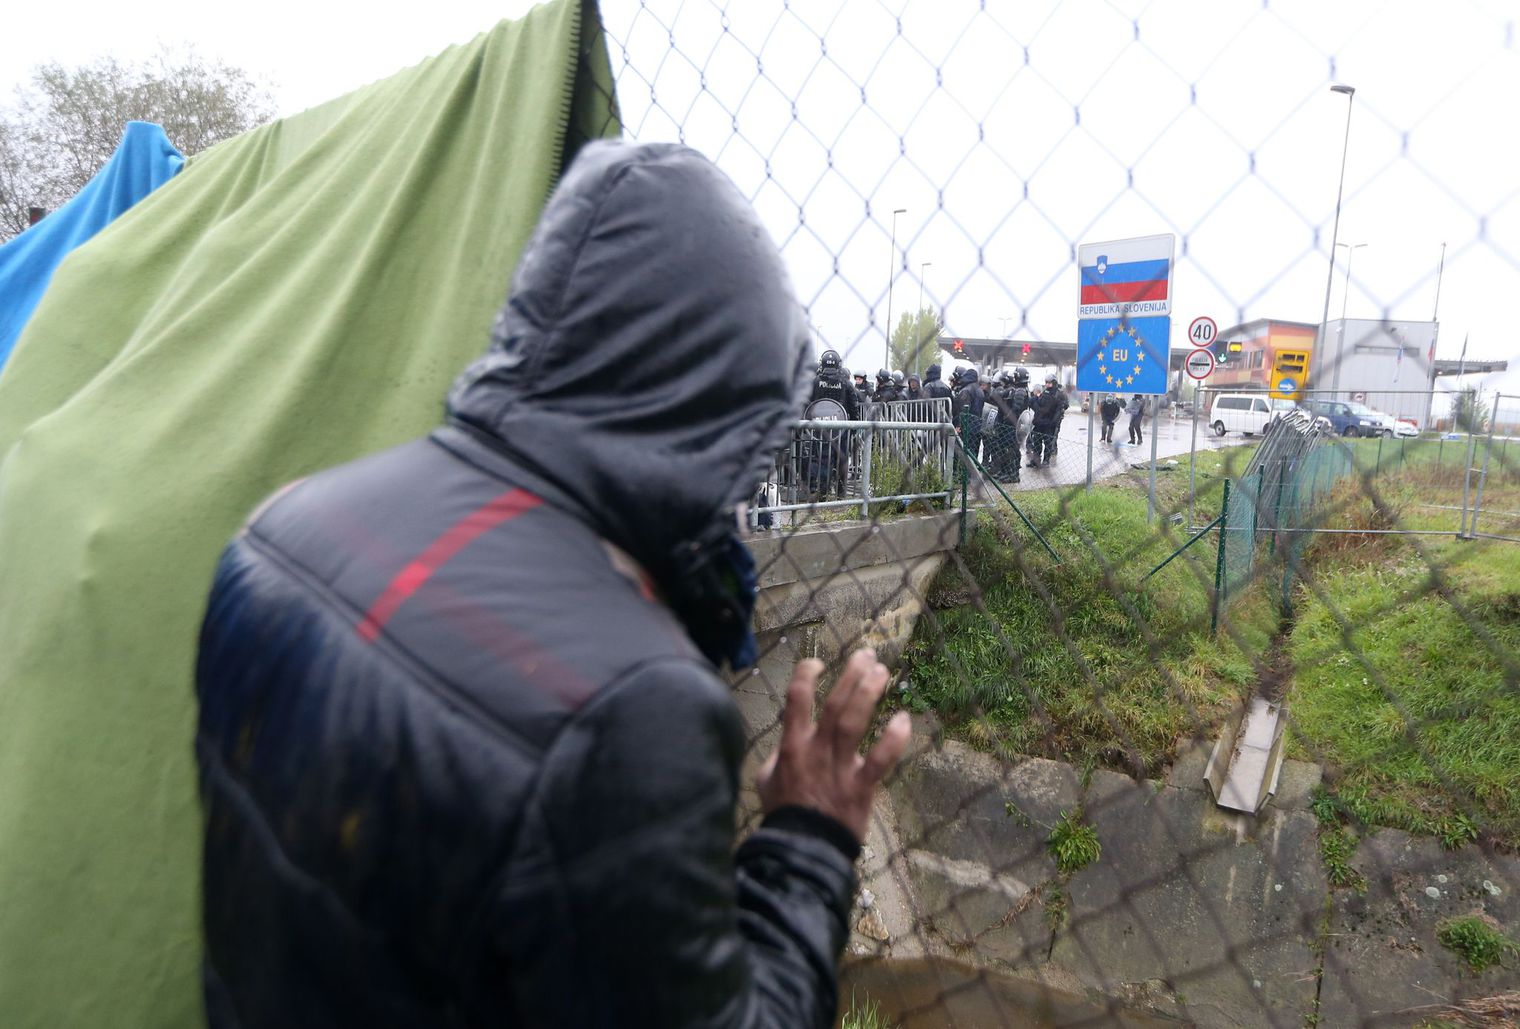 a-migrant-waits-in-no-man-s-land-to-cross-the-border-to-slovenia-from-trnovec_5454152